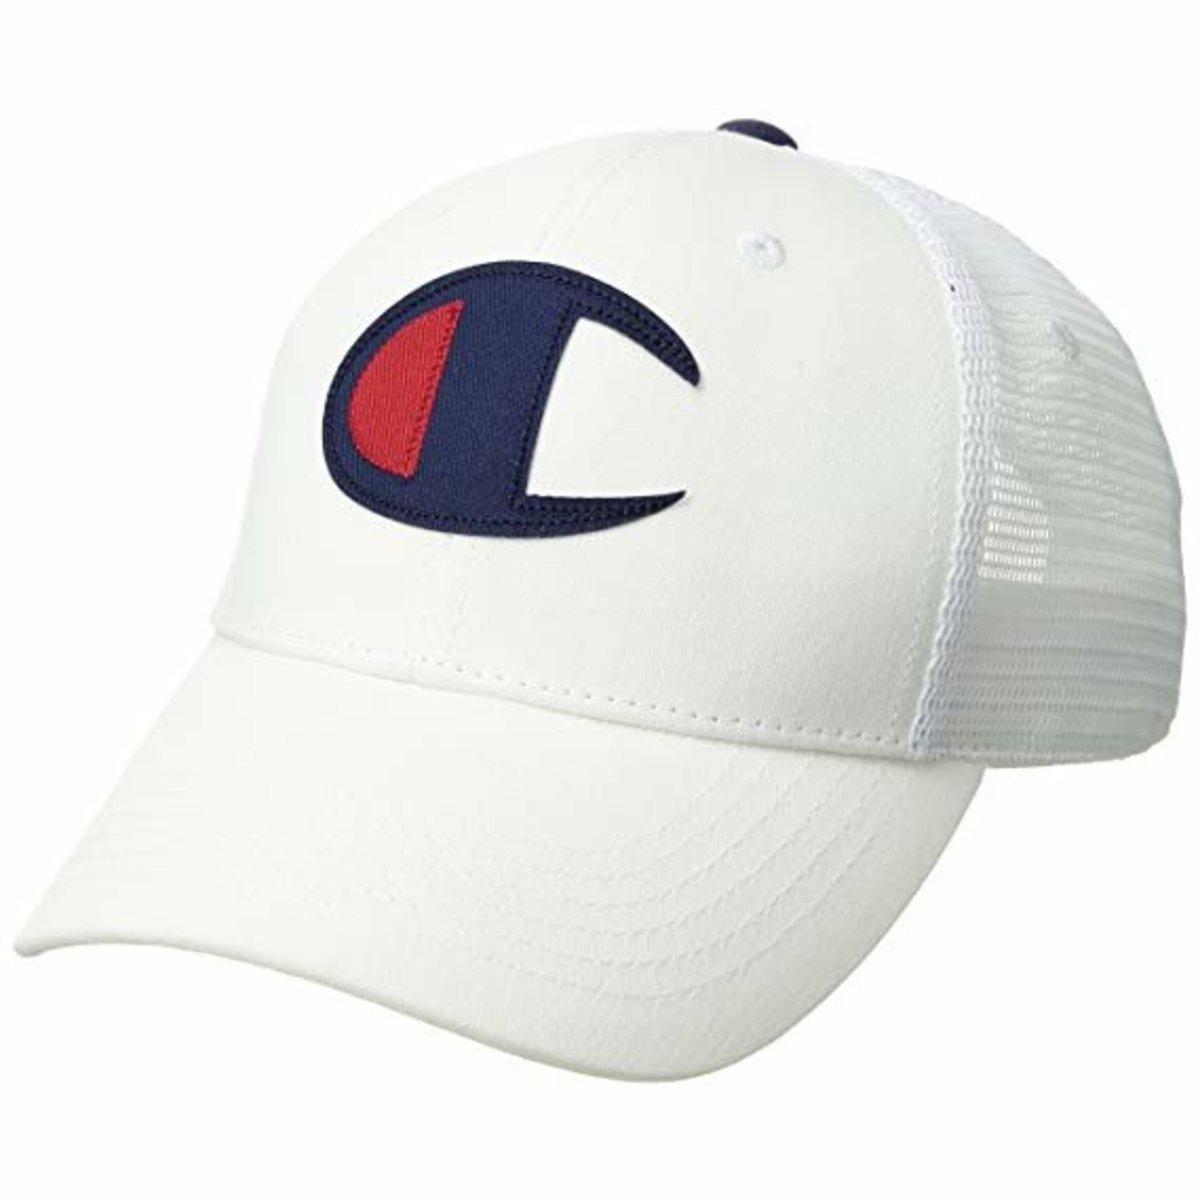 05c0d22e303 Lyst - Champion Twill Mesh Dad Cap in White